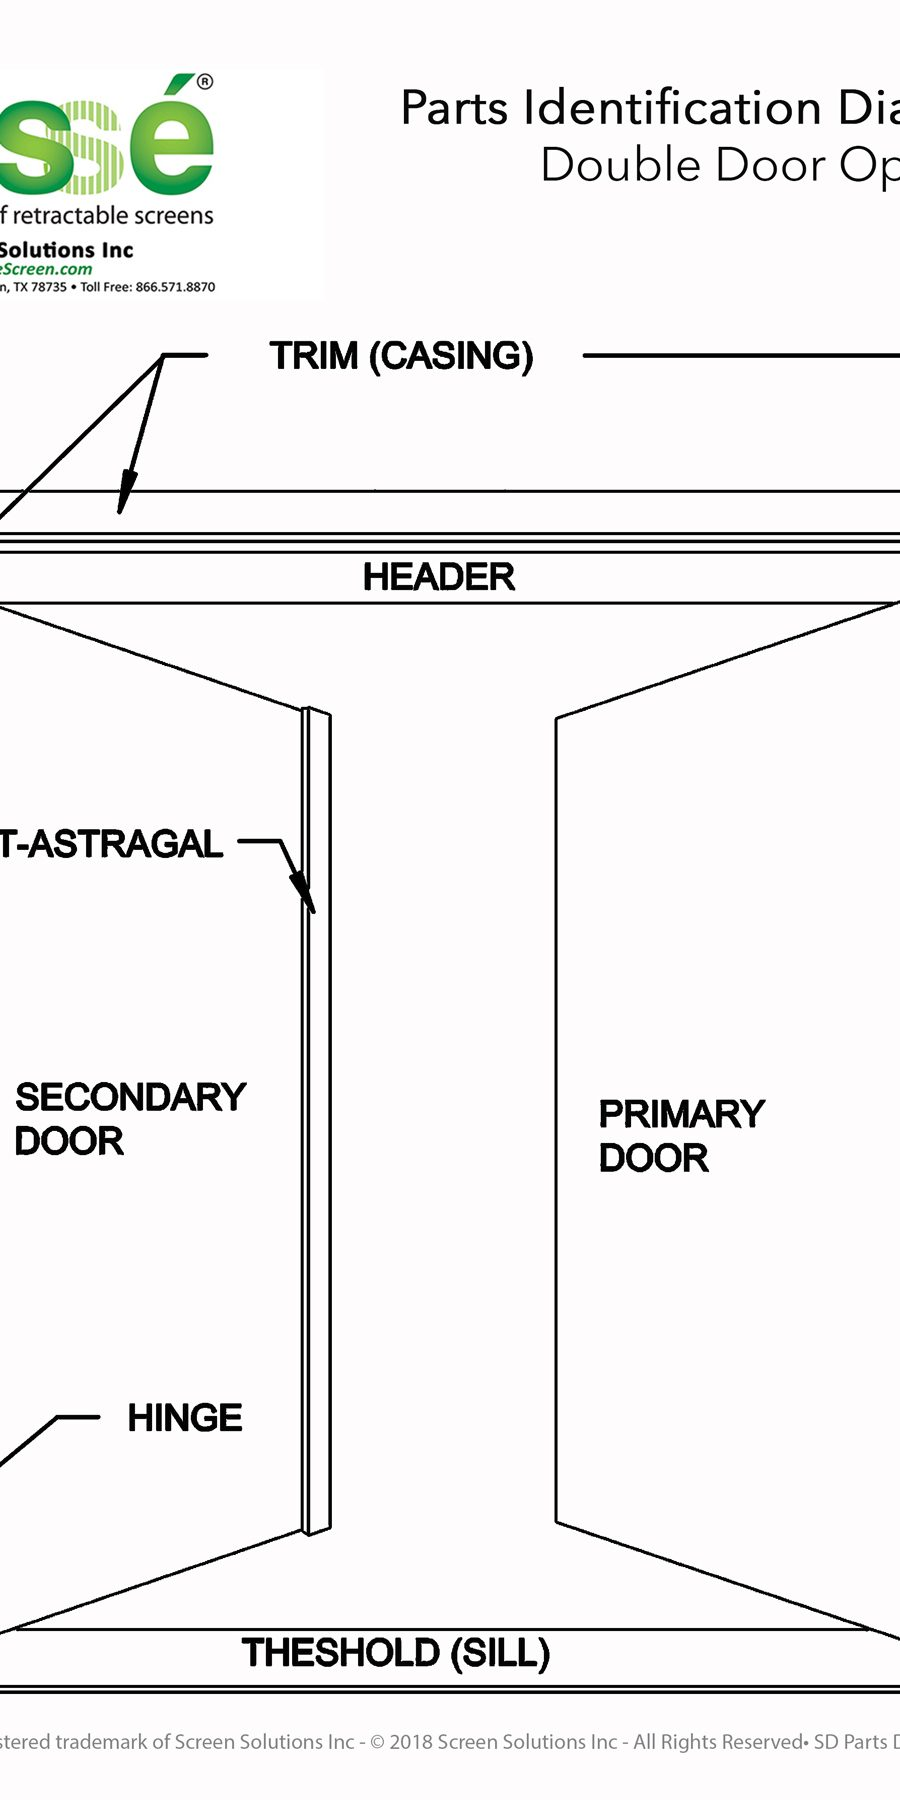 Double Door Parts Identification Drawing